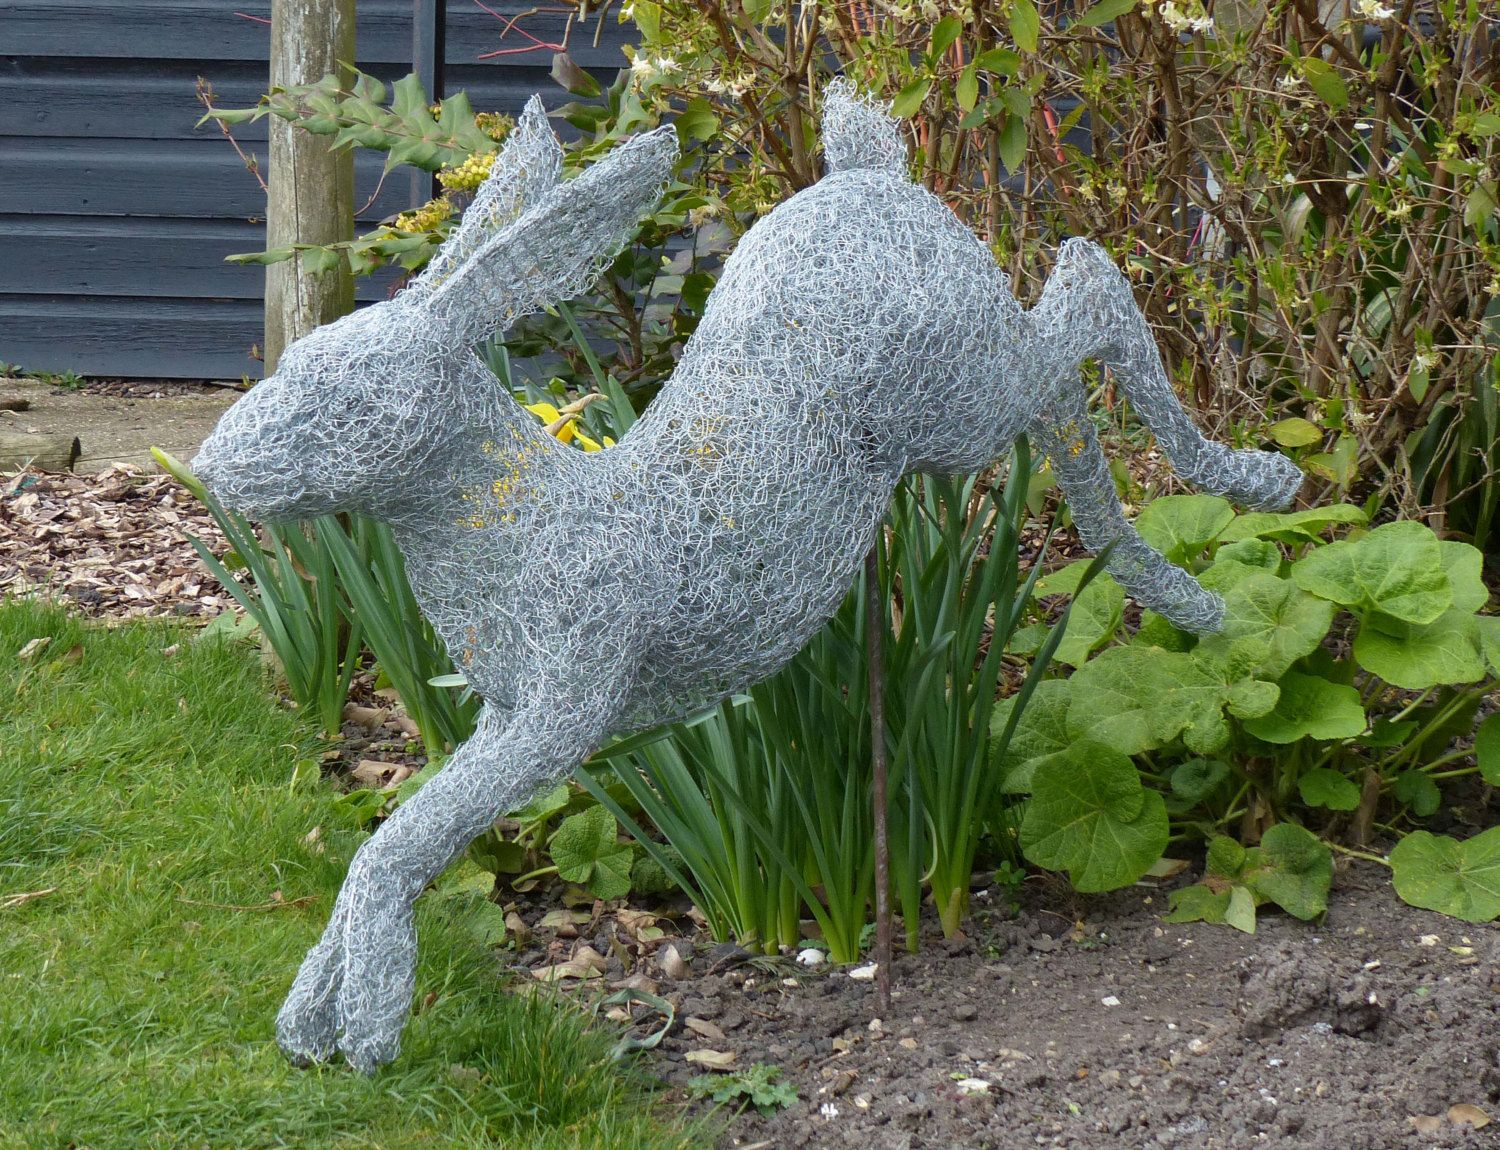 Leaping Hare wire sculpture by CottageyCreations on Etsy | Hares ...